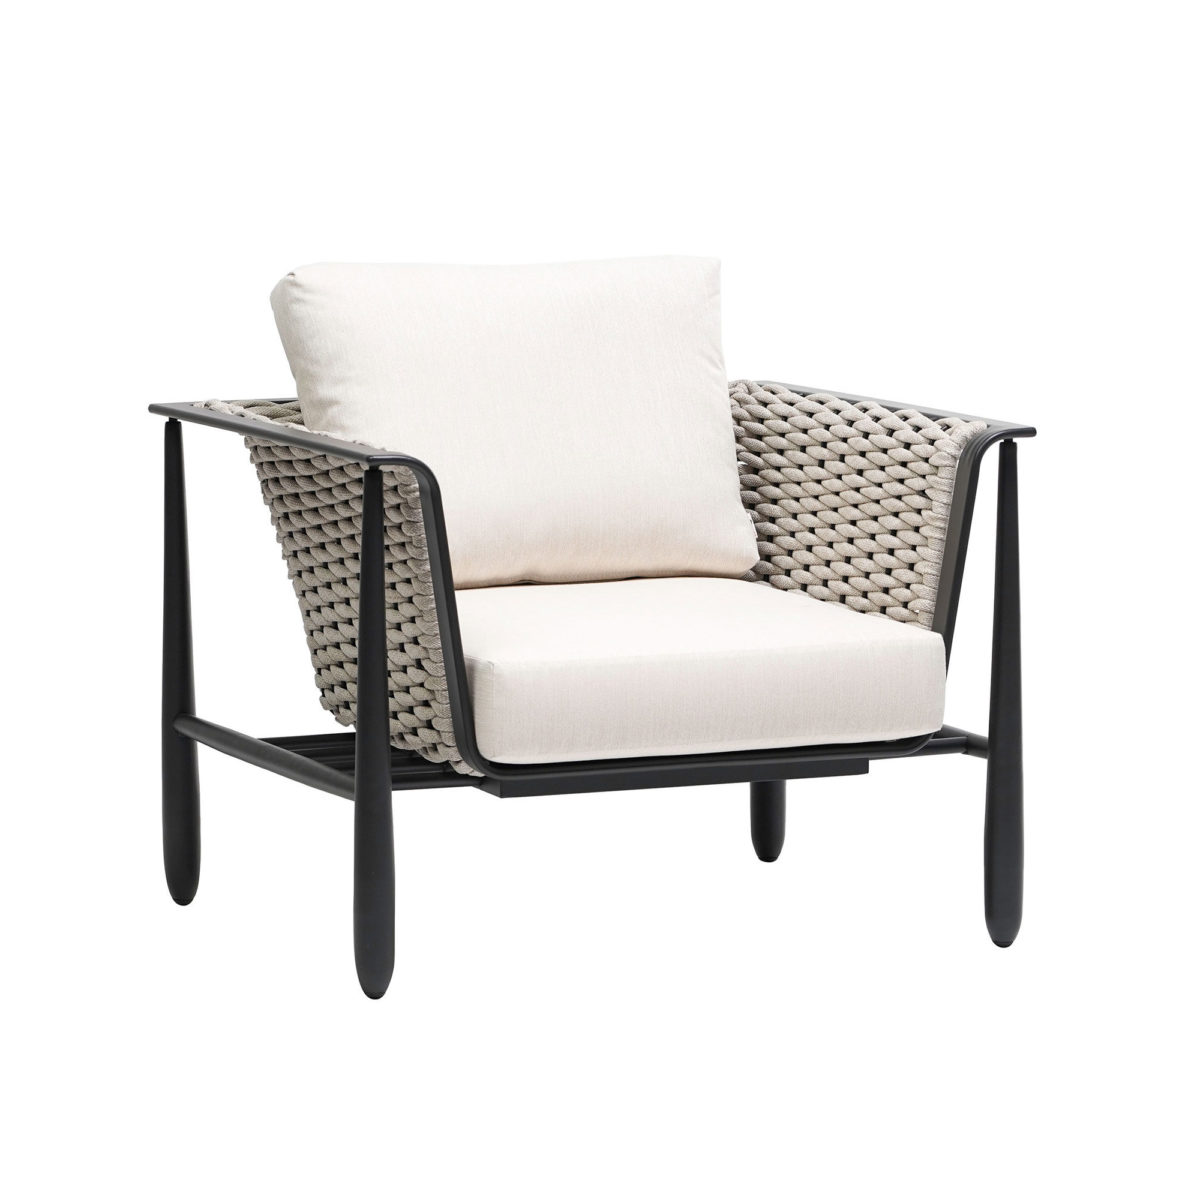 The Diva club chair in graphite grey frame with cream cushions.